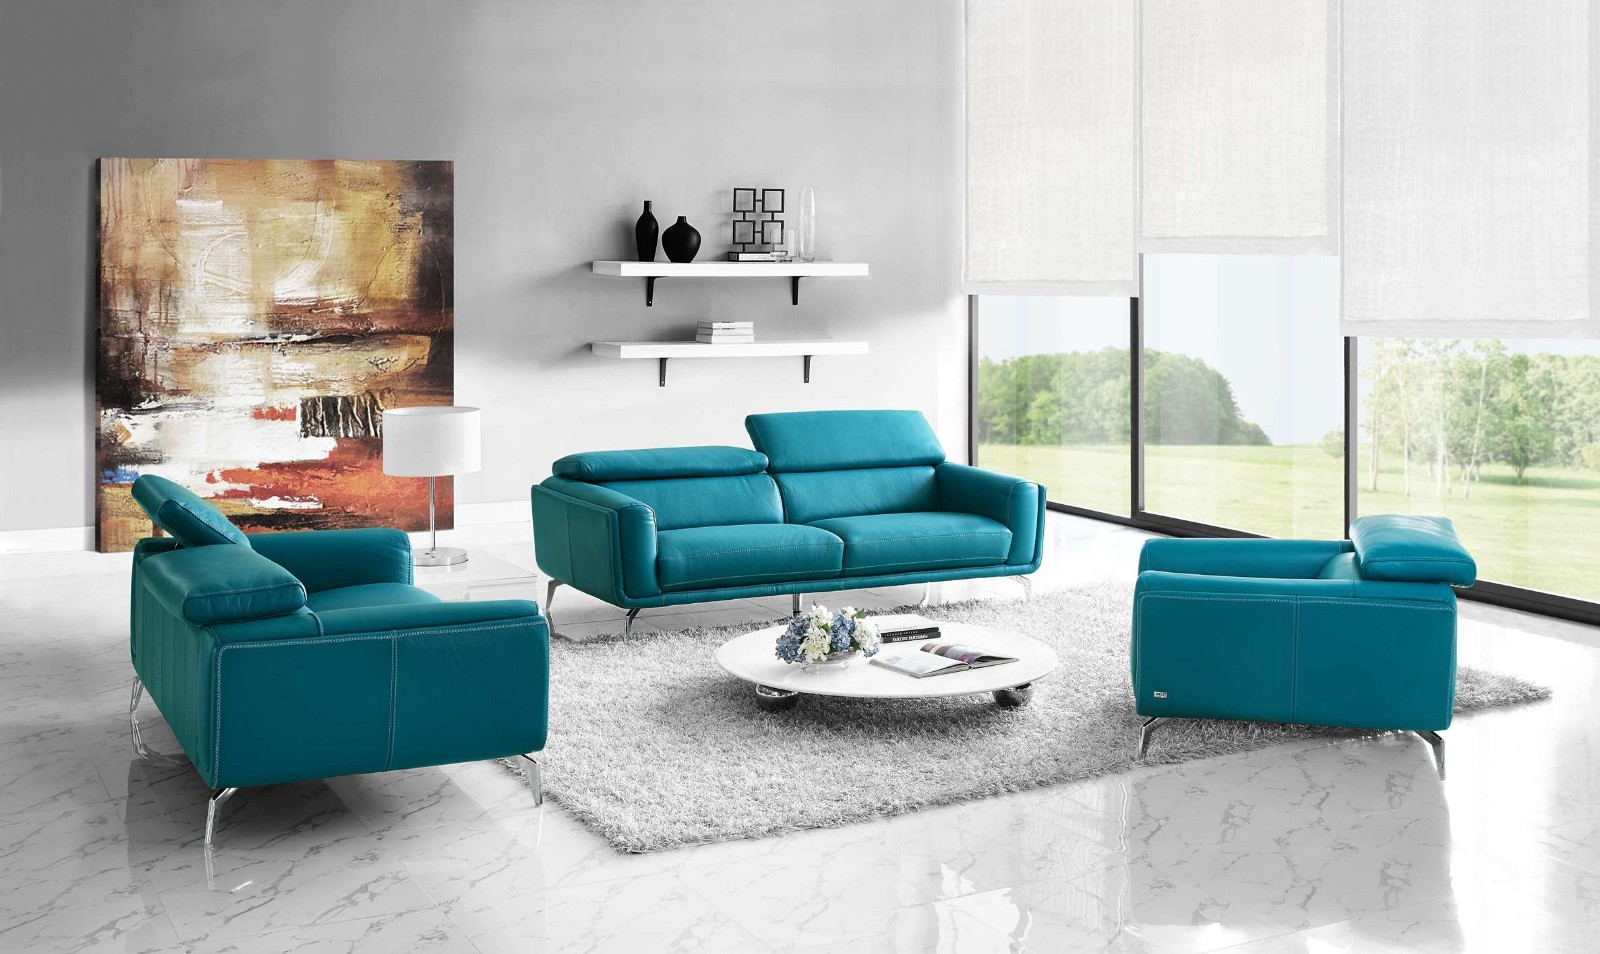 Ers Especially Those Who Decided To Purchase Furniture Of Light Colors Which Can Be Contaminated Fast Are Interested What Material They Choose